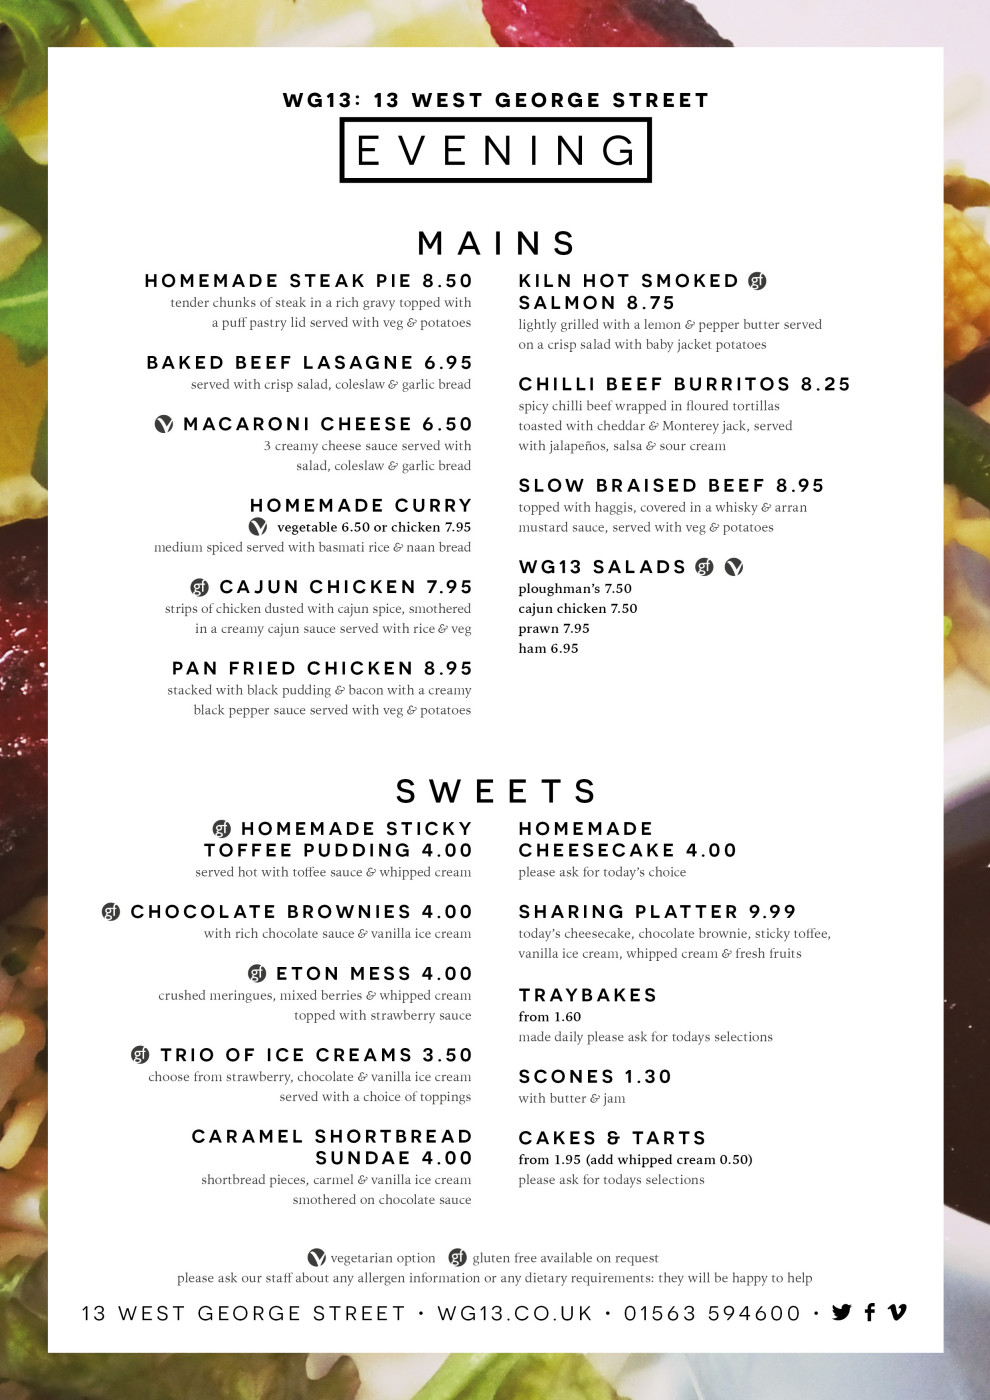 WG13 Afternoon Menu 2